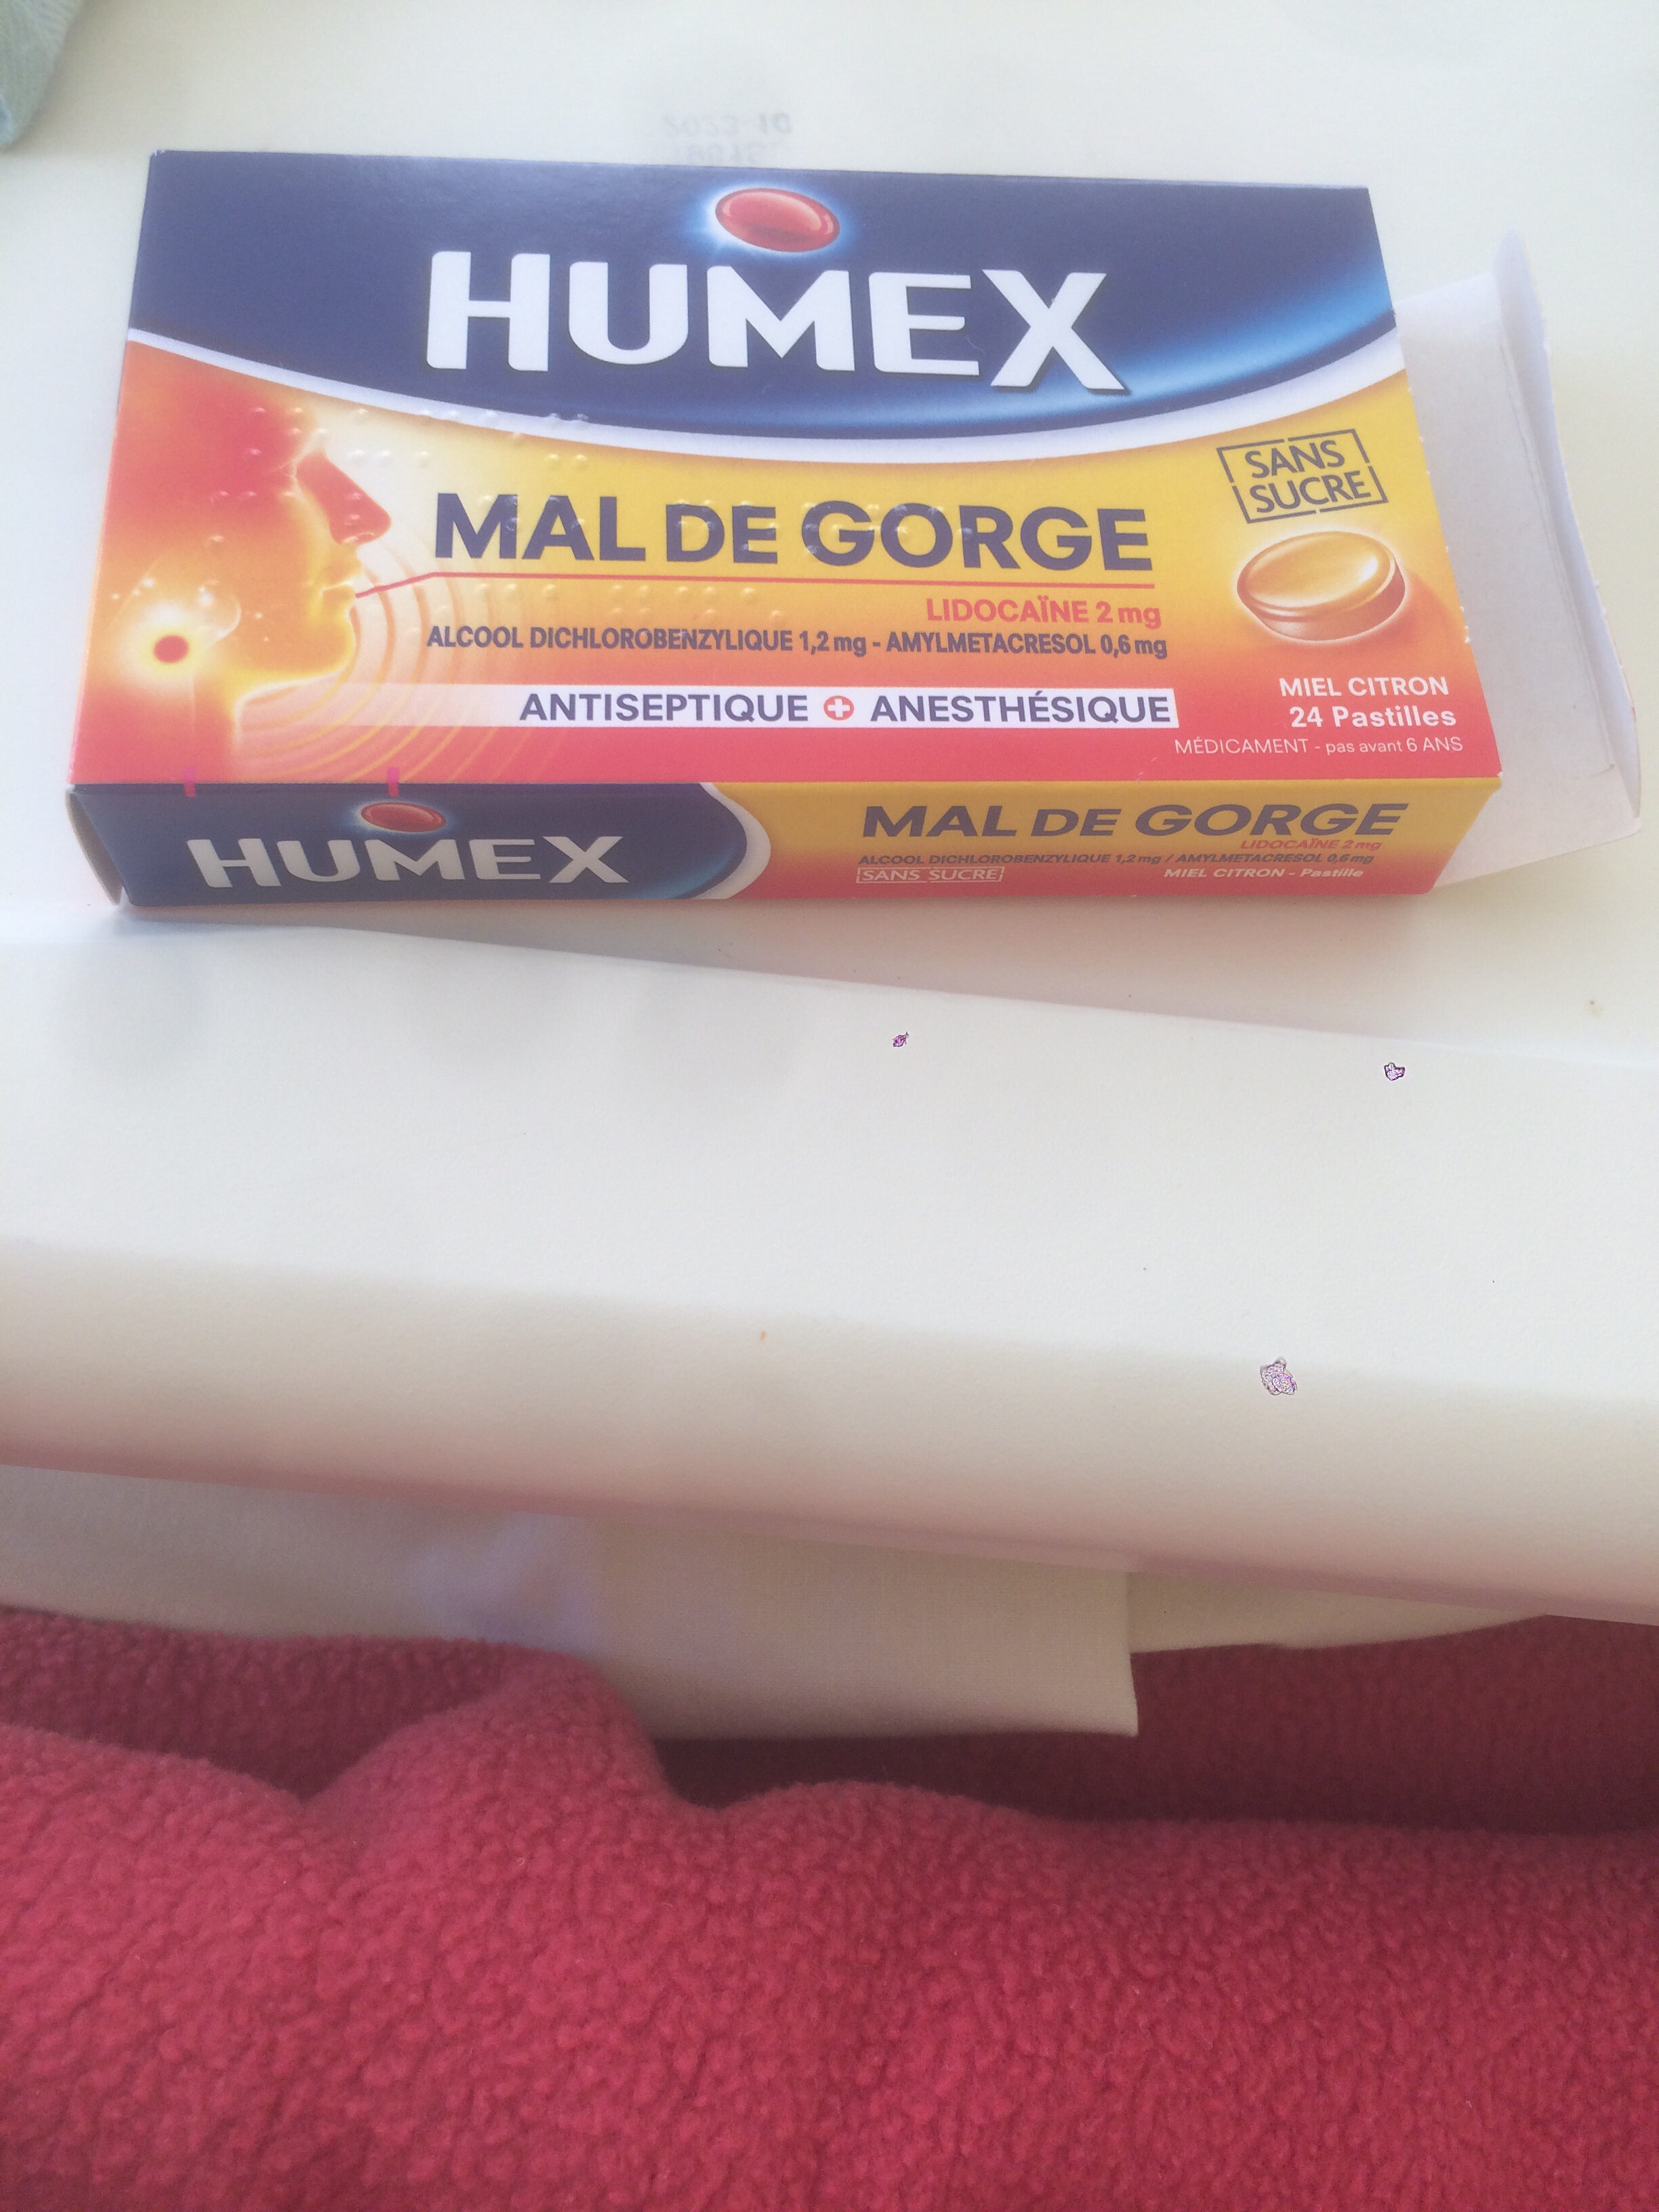 Humex mal de gorge - Product - fr